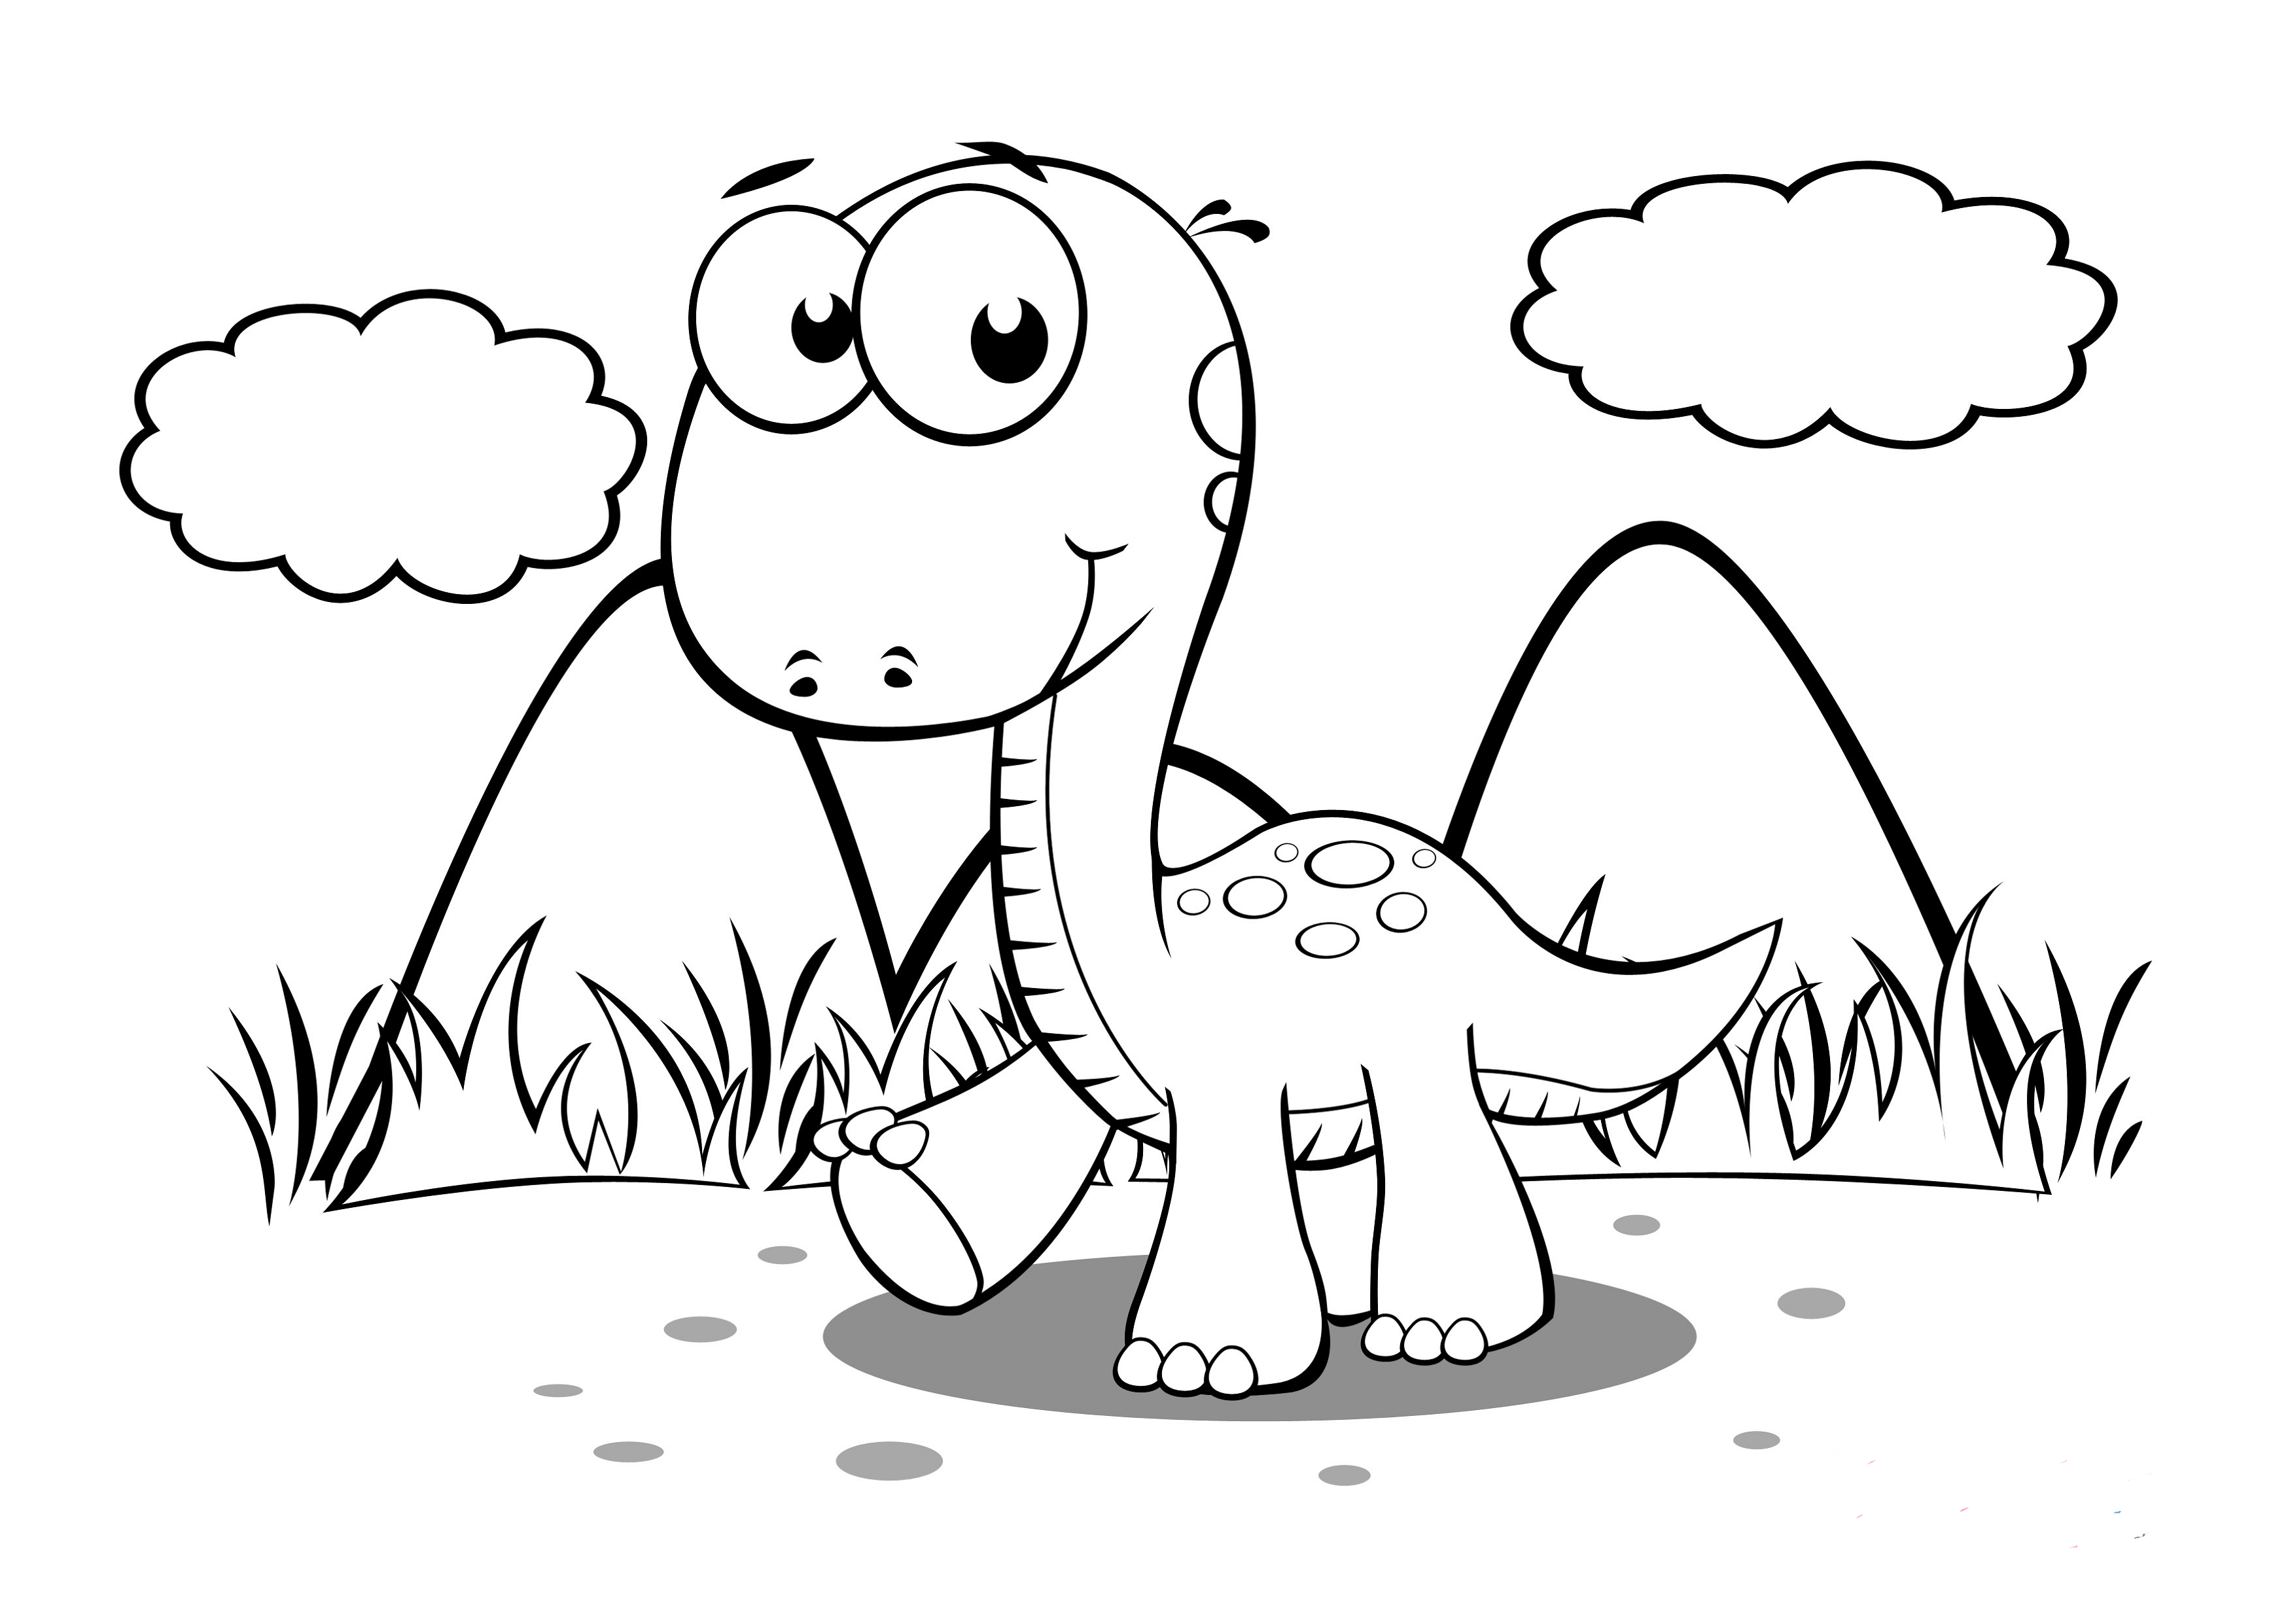 free printable dinosaur pictures baby dinosaur coloring pages for preschoolers activity pictures dinosaur printable free